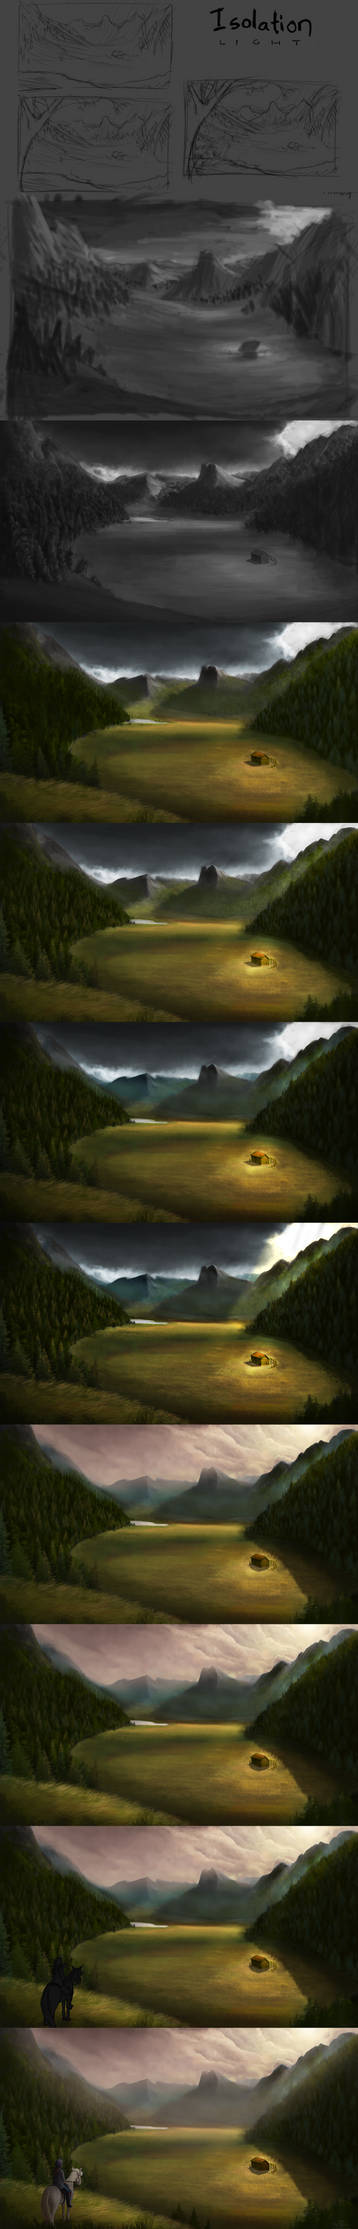 Glade of Solitude Image Lapse by Robsa990